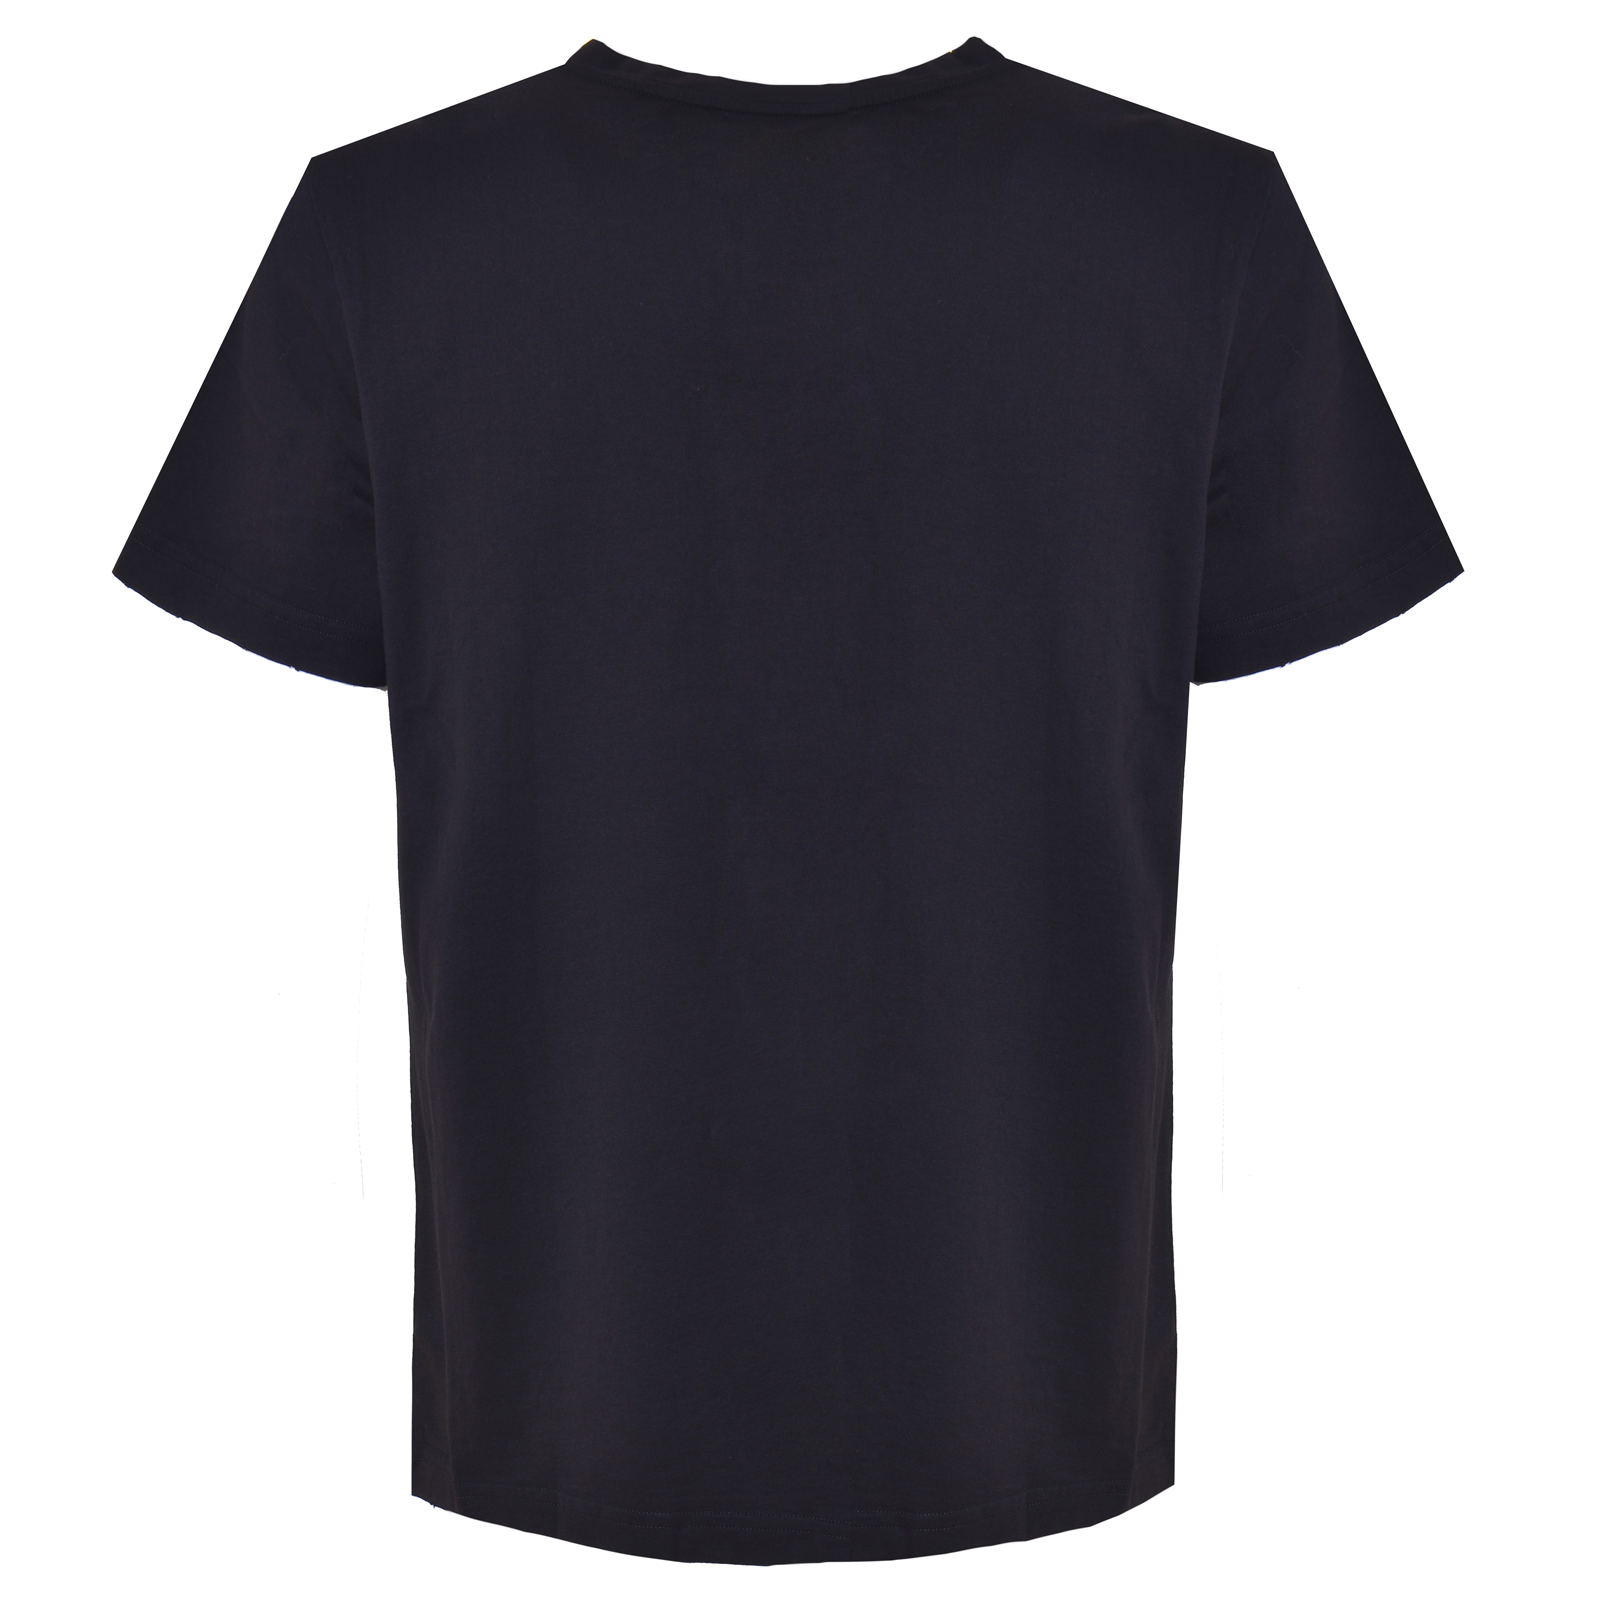 Black T Shirt Png (101+ images in Collection) Page 2.